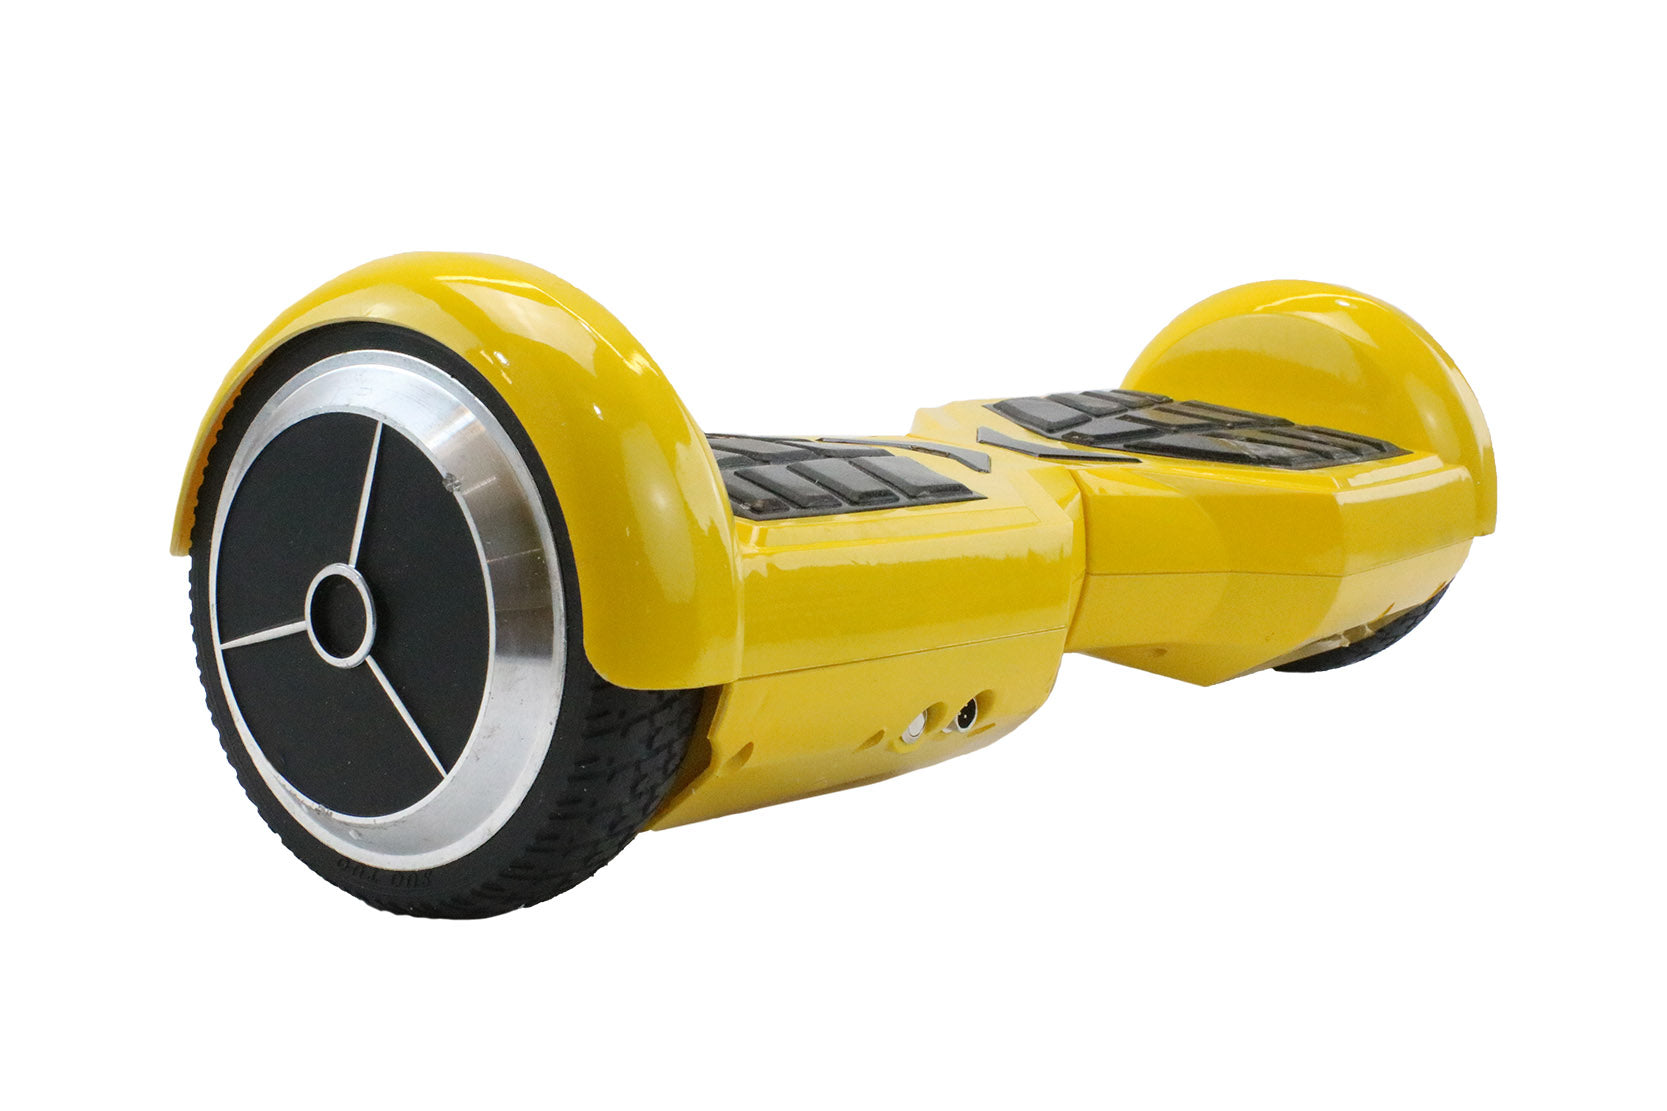 REFURBISHED 6.5″ YELLOW HOVERBOARD + BAG